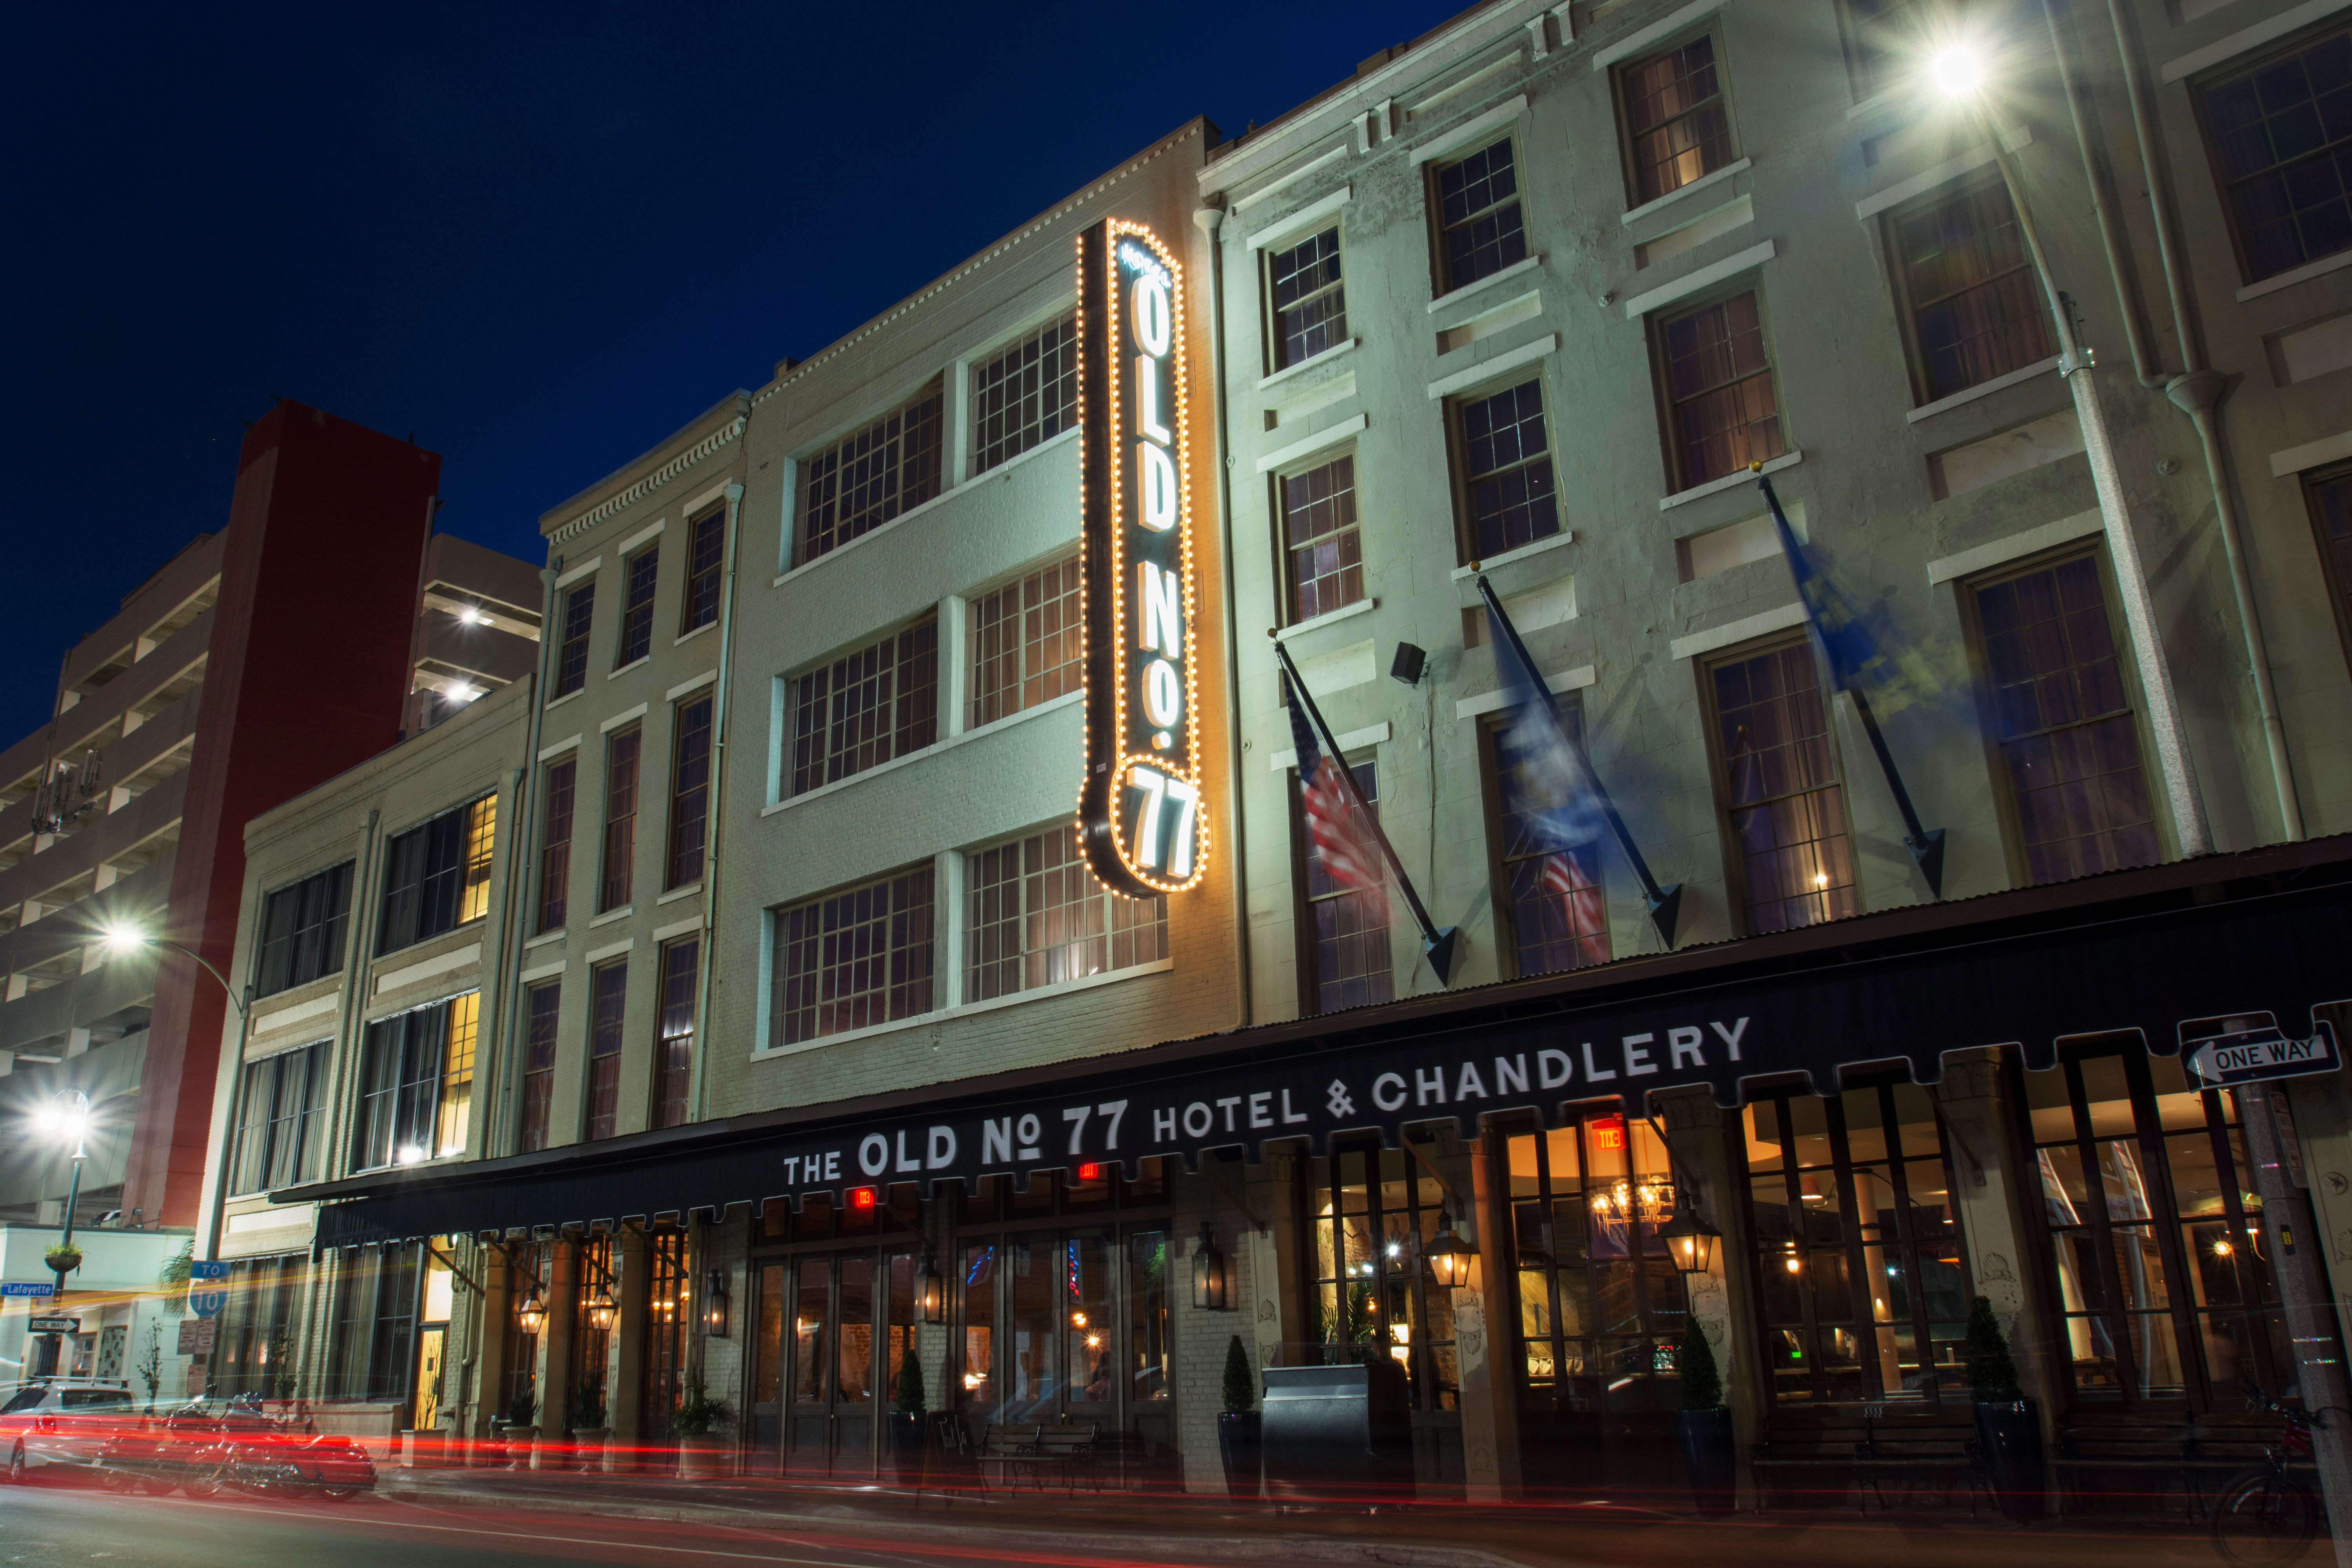 The Old No 77 Hotel Chandlery New Orleans La With Images